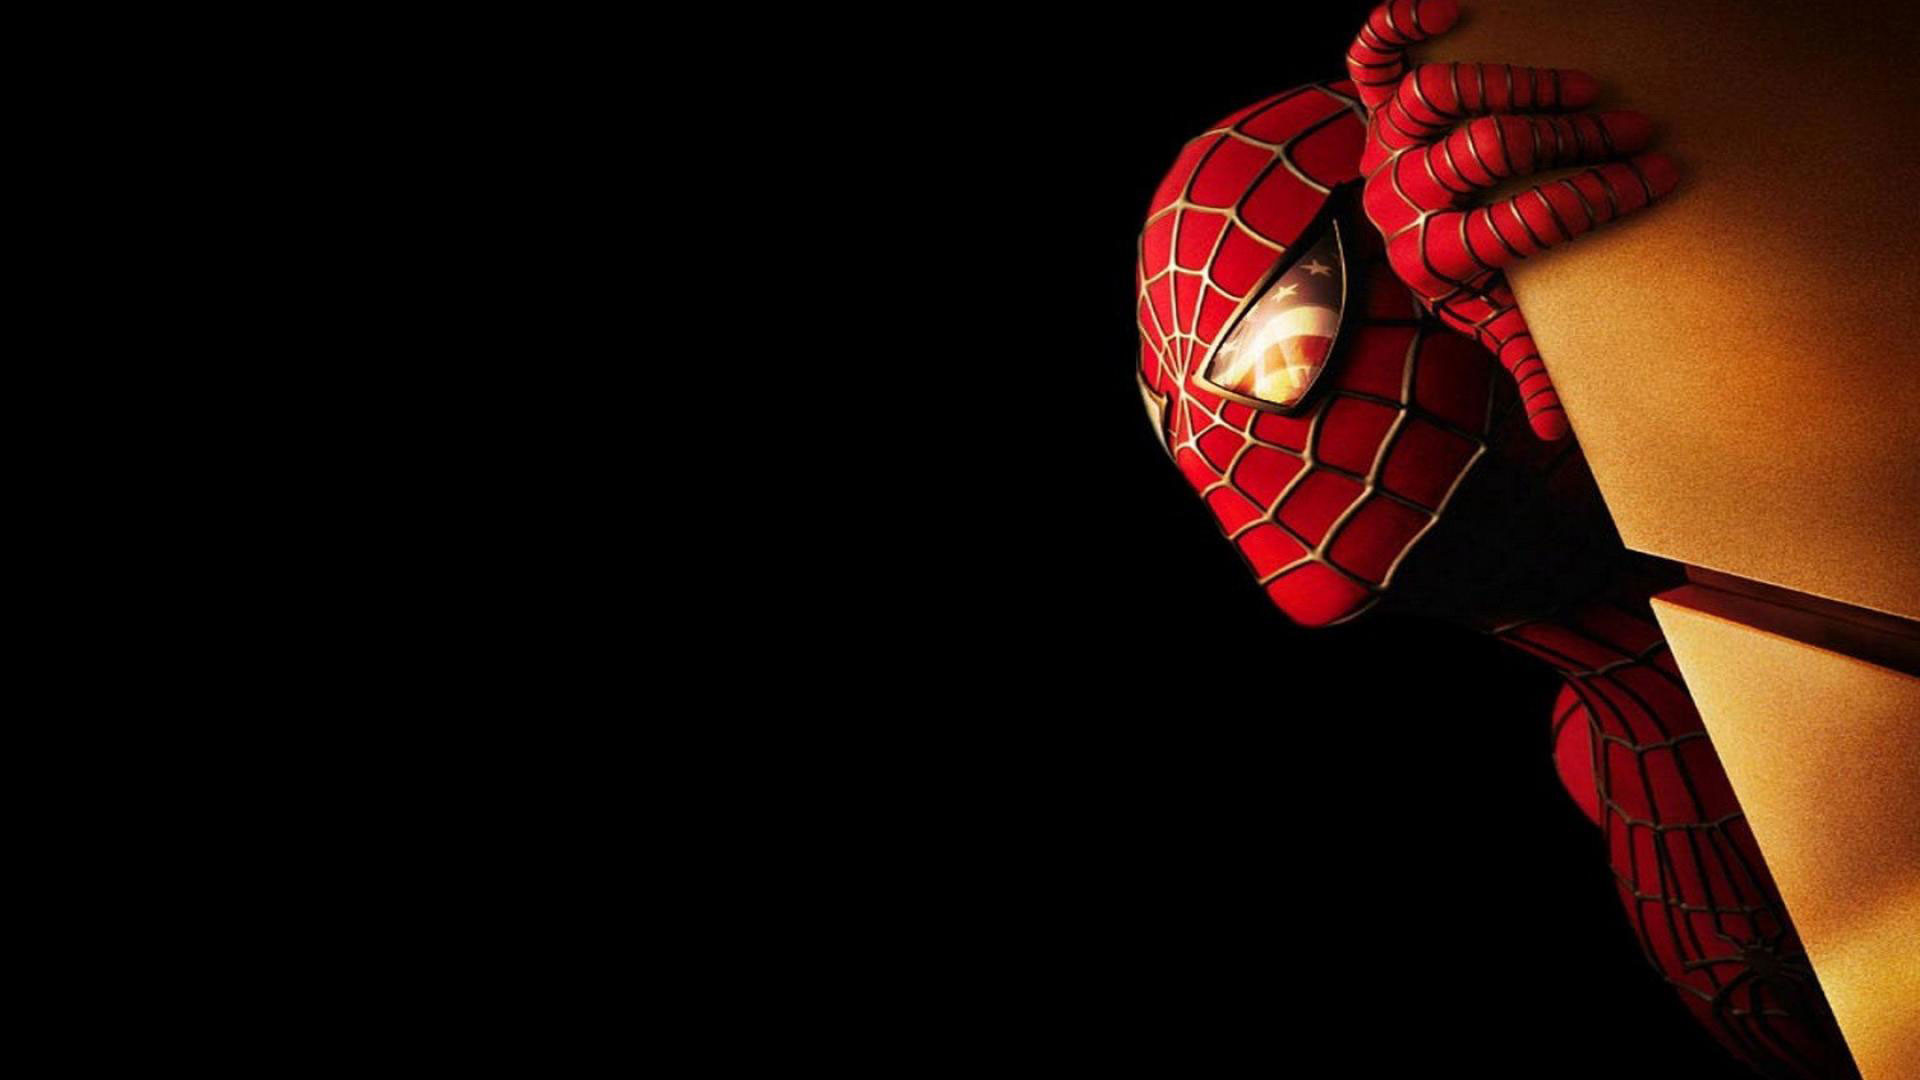 super hero wallpapers 77 images